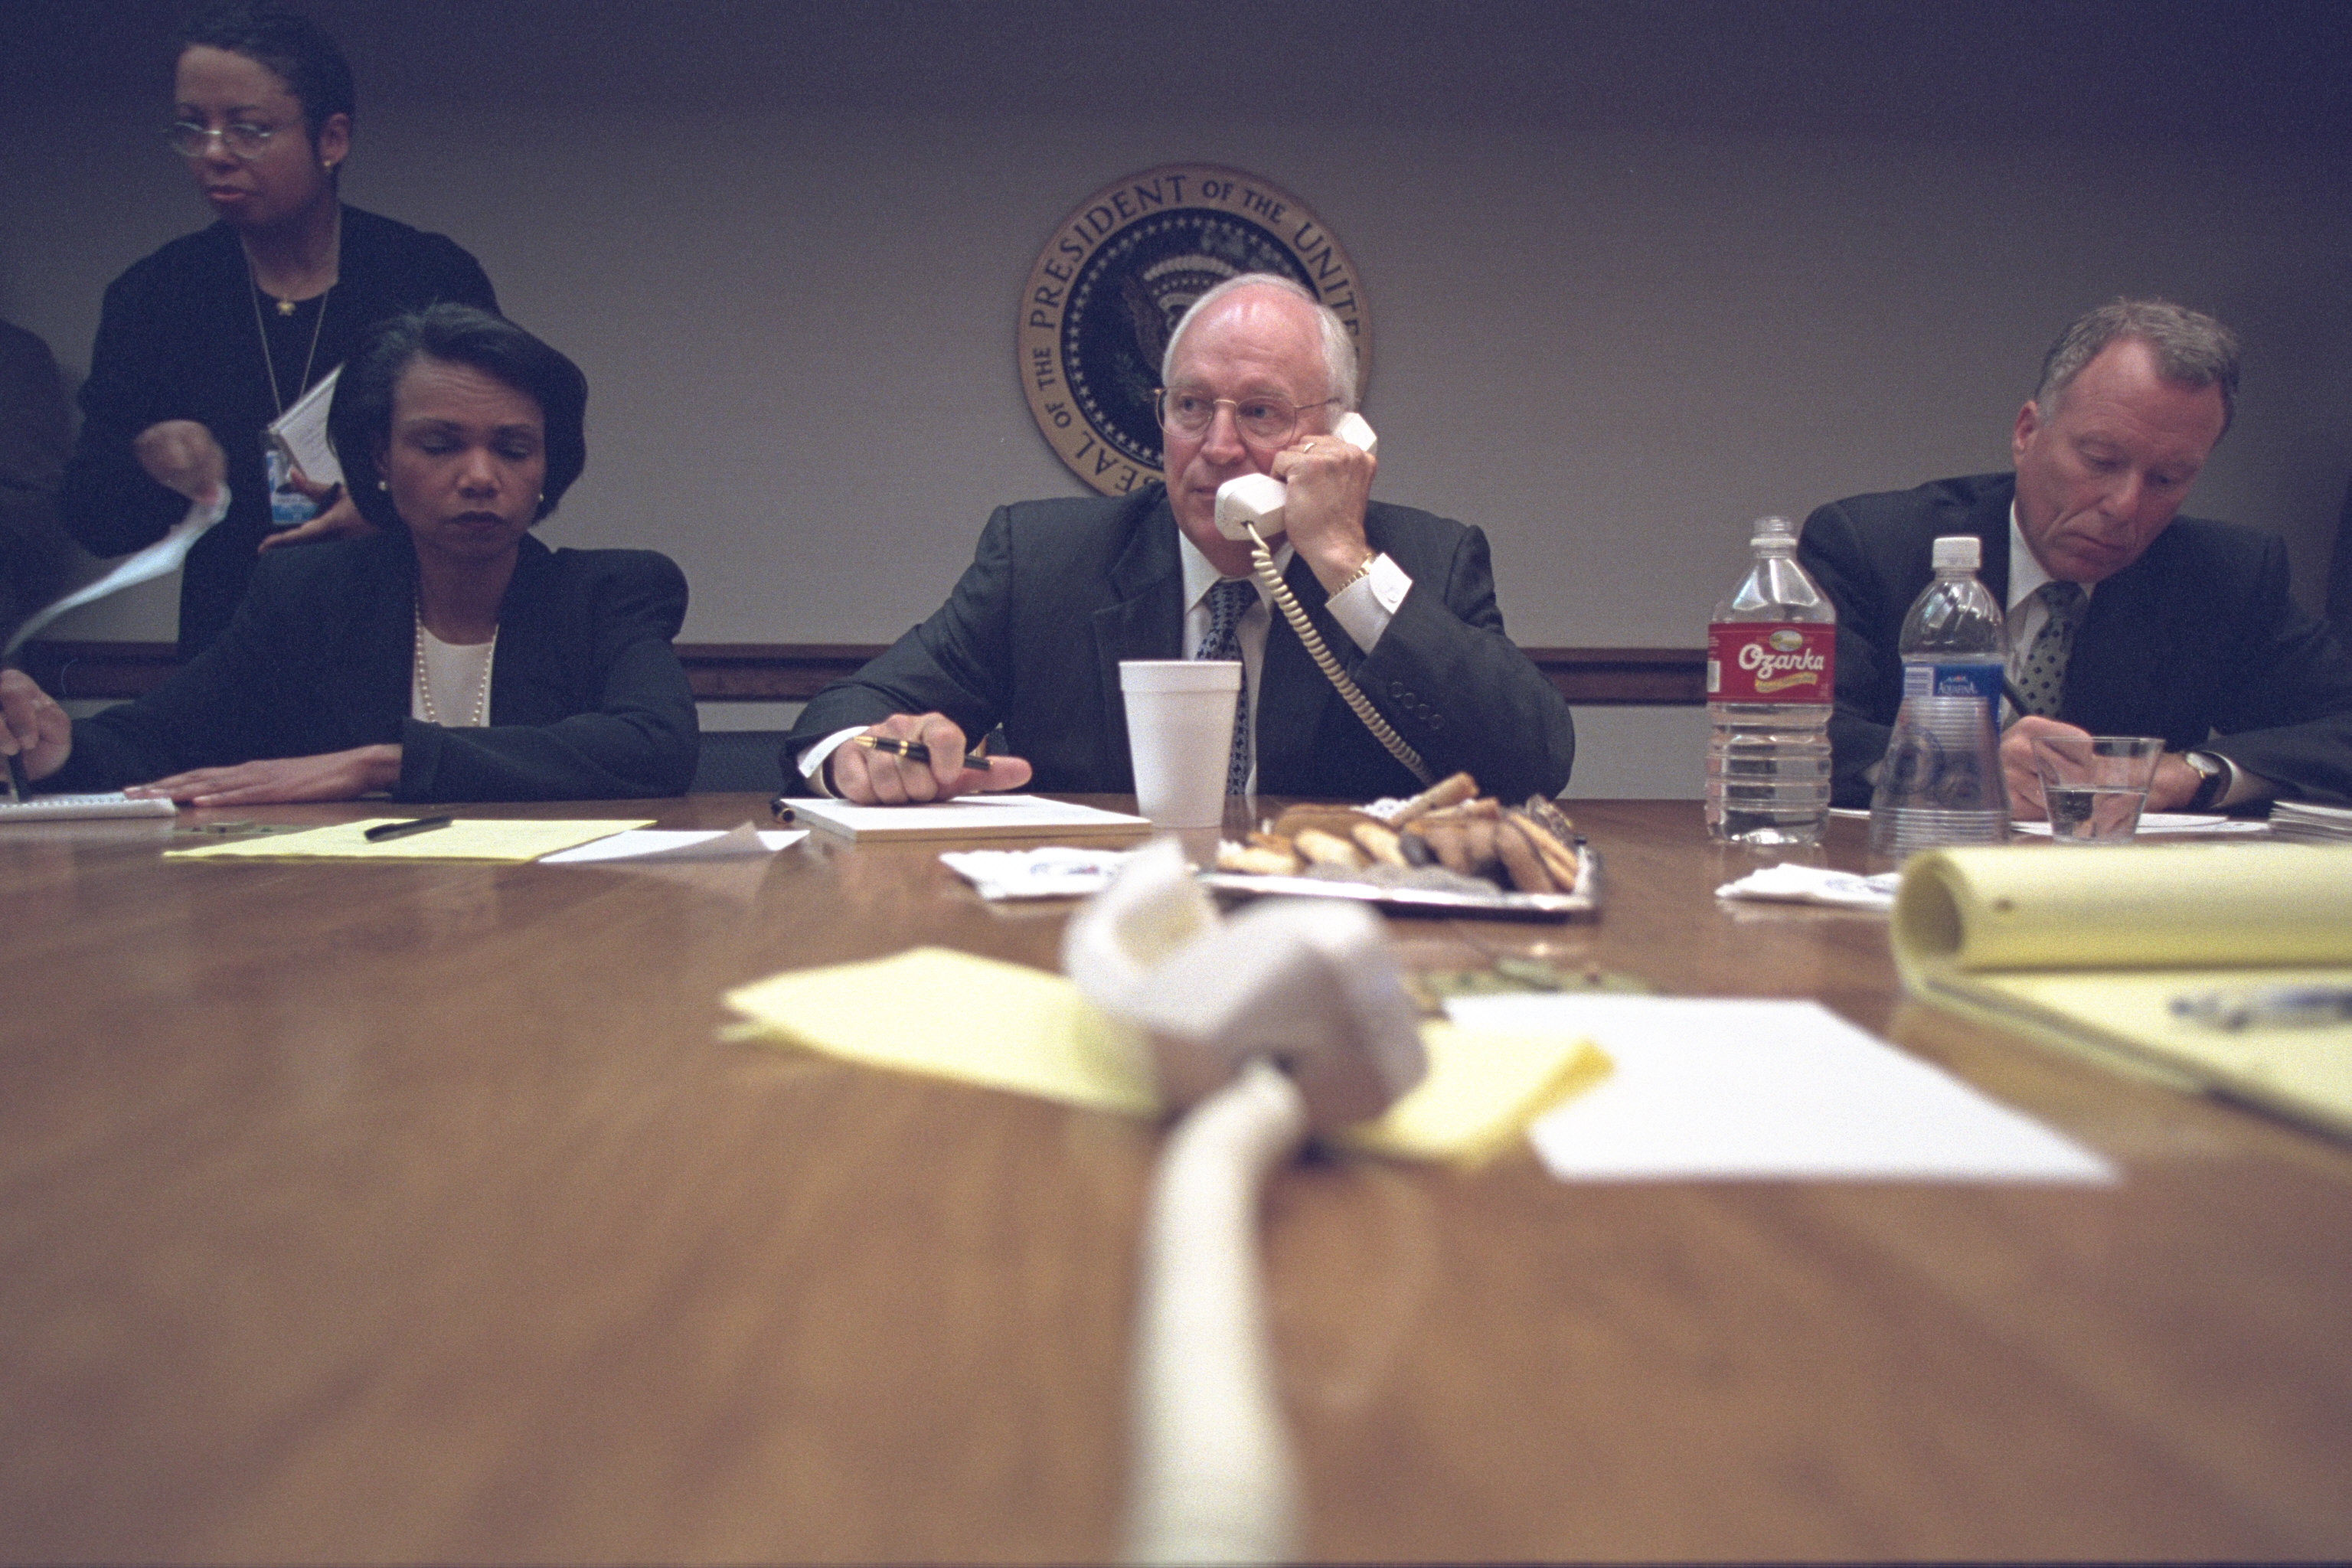 Vice President Cheney with National Security Advisor Condoleezza Rice and Chief of Staff I. Lewis